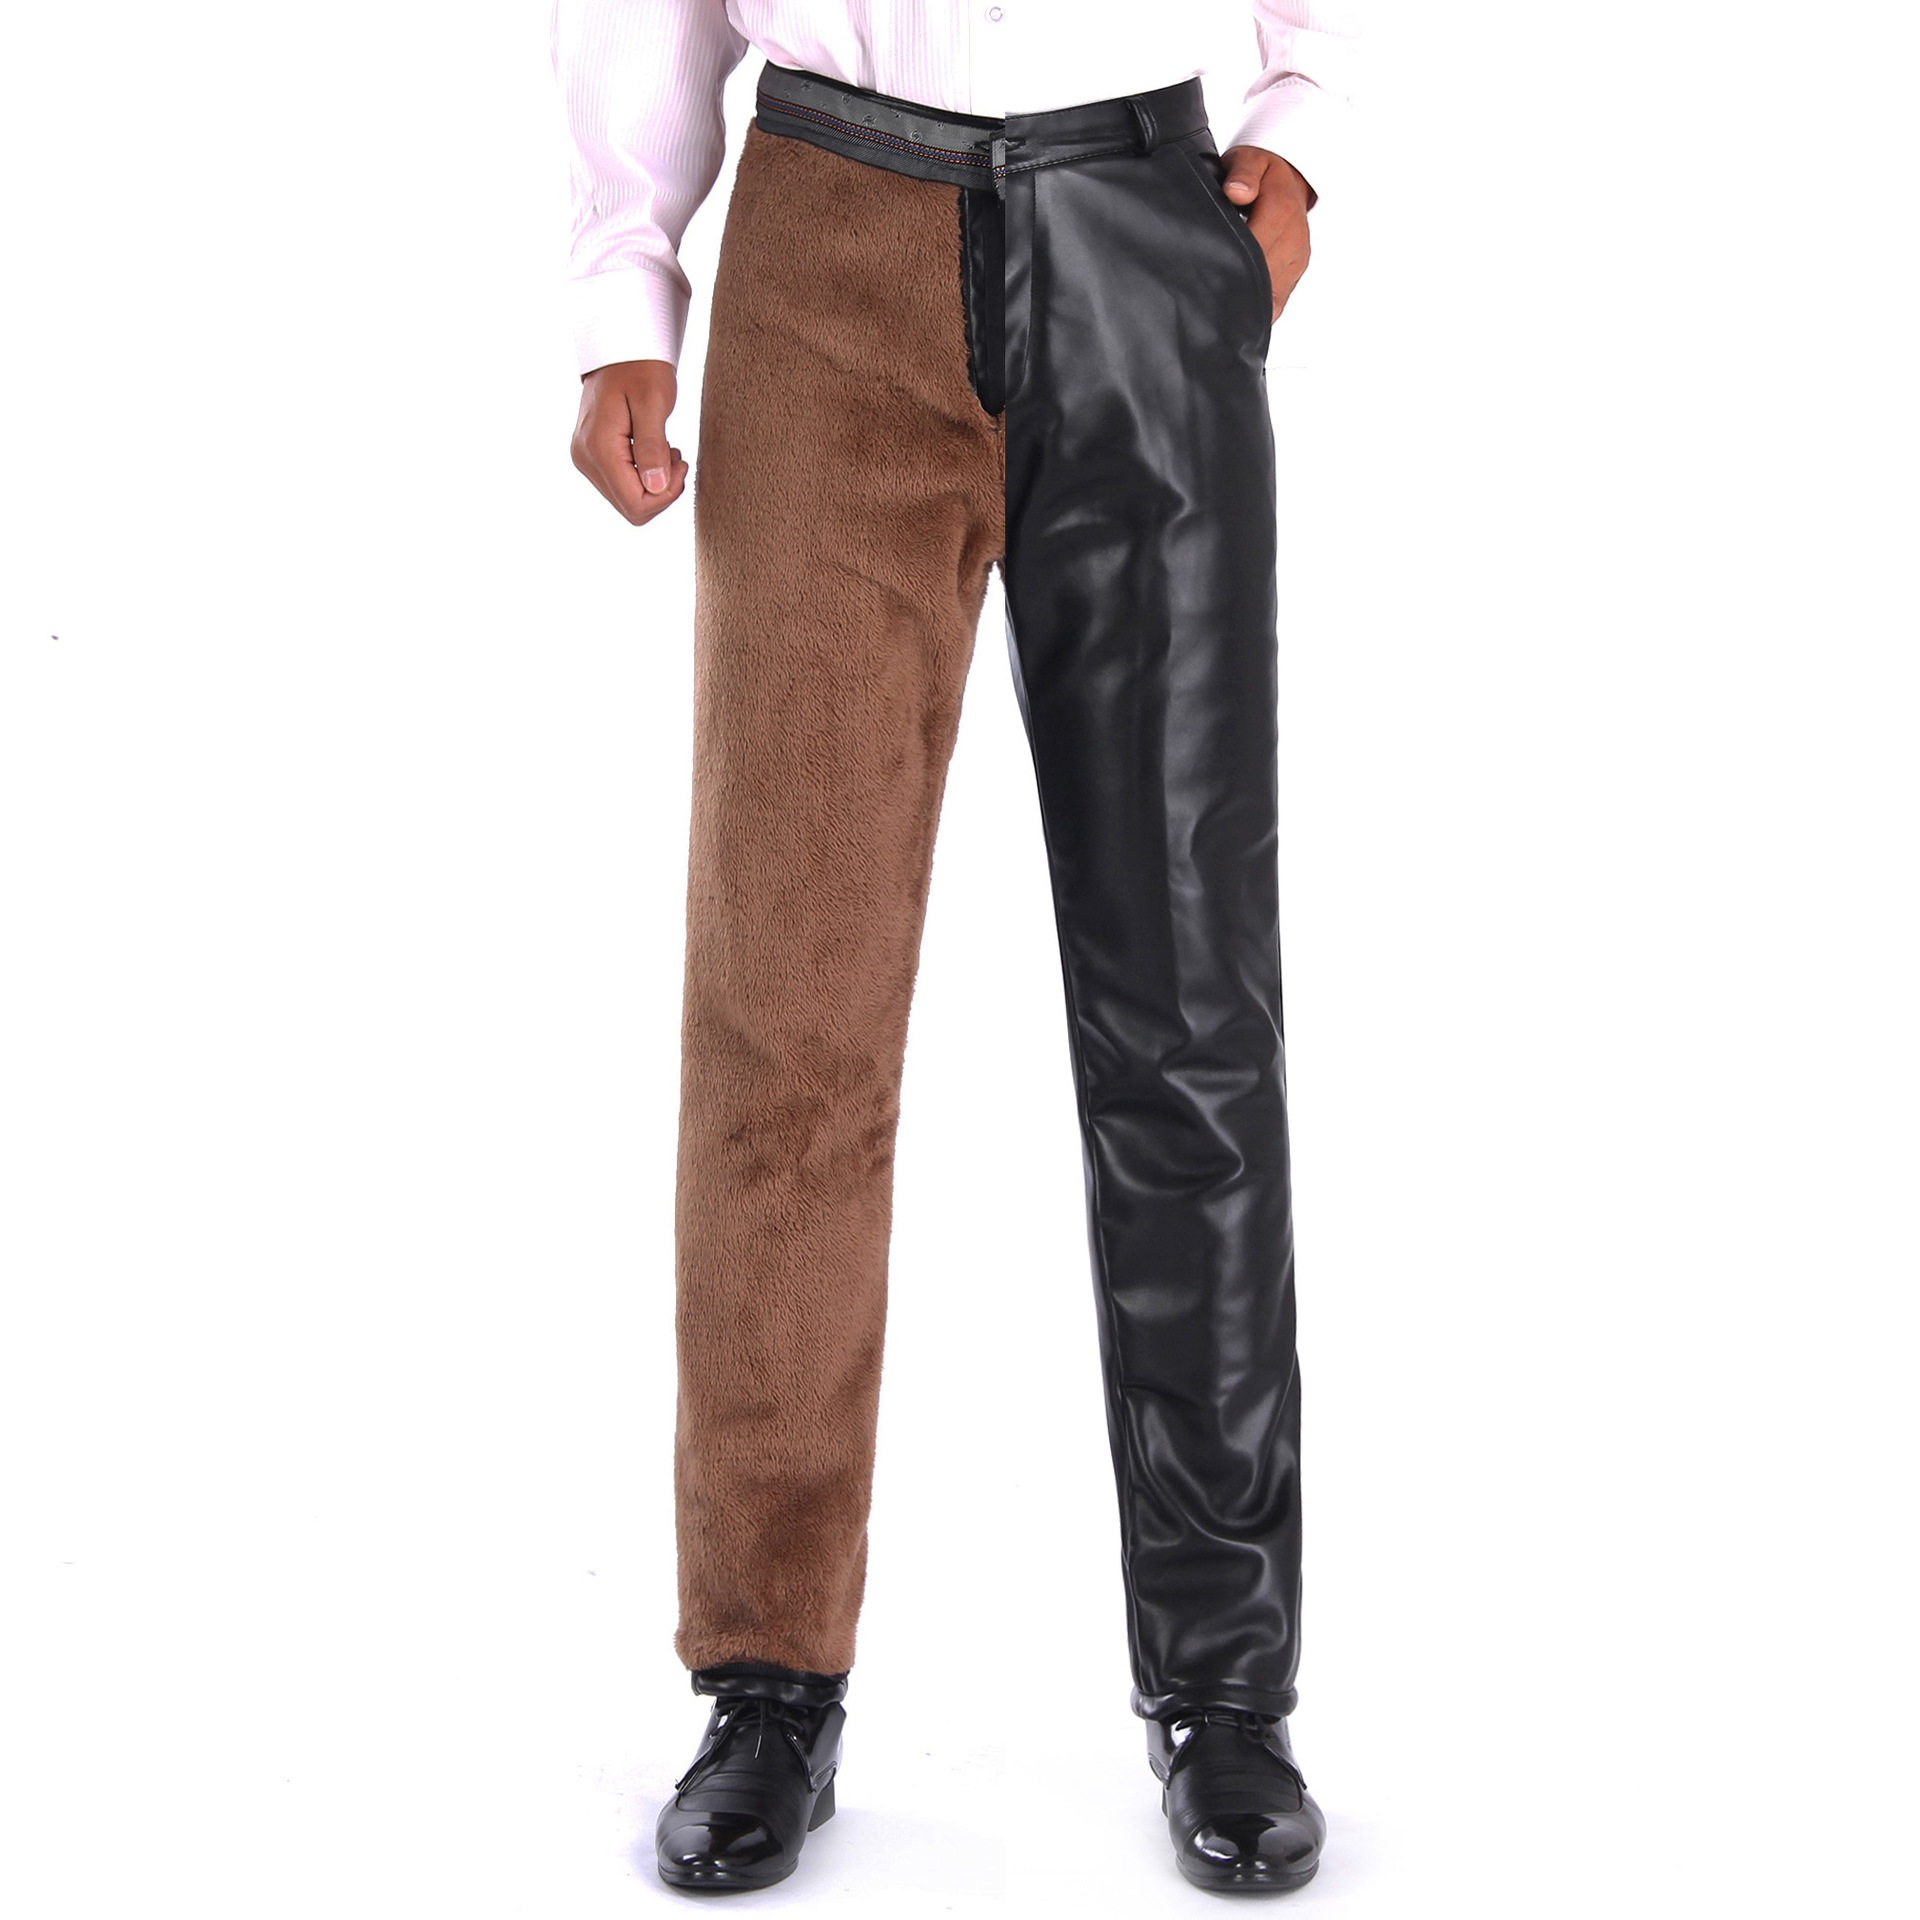 Men Cargo Pants Fashion To Thicken The Warm Wind In Winter Plus Velvet Keep Warm Locomotive Casual Men Leather Pants